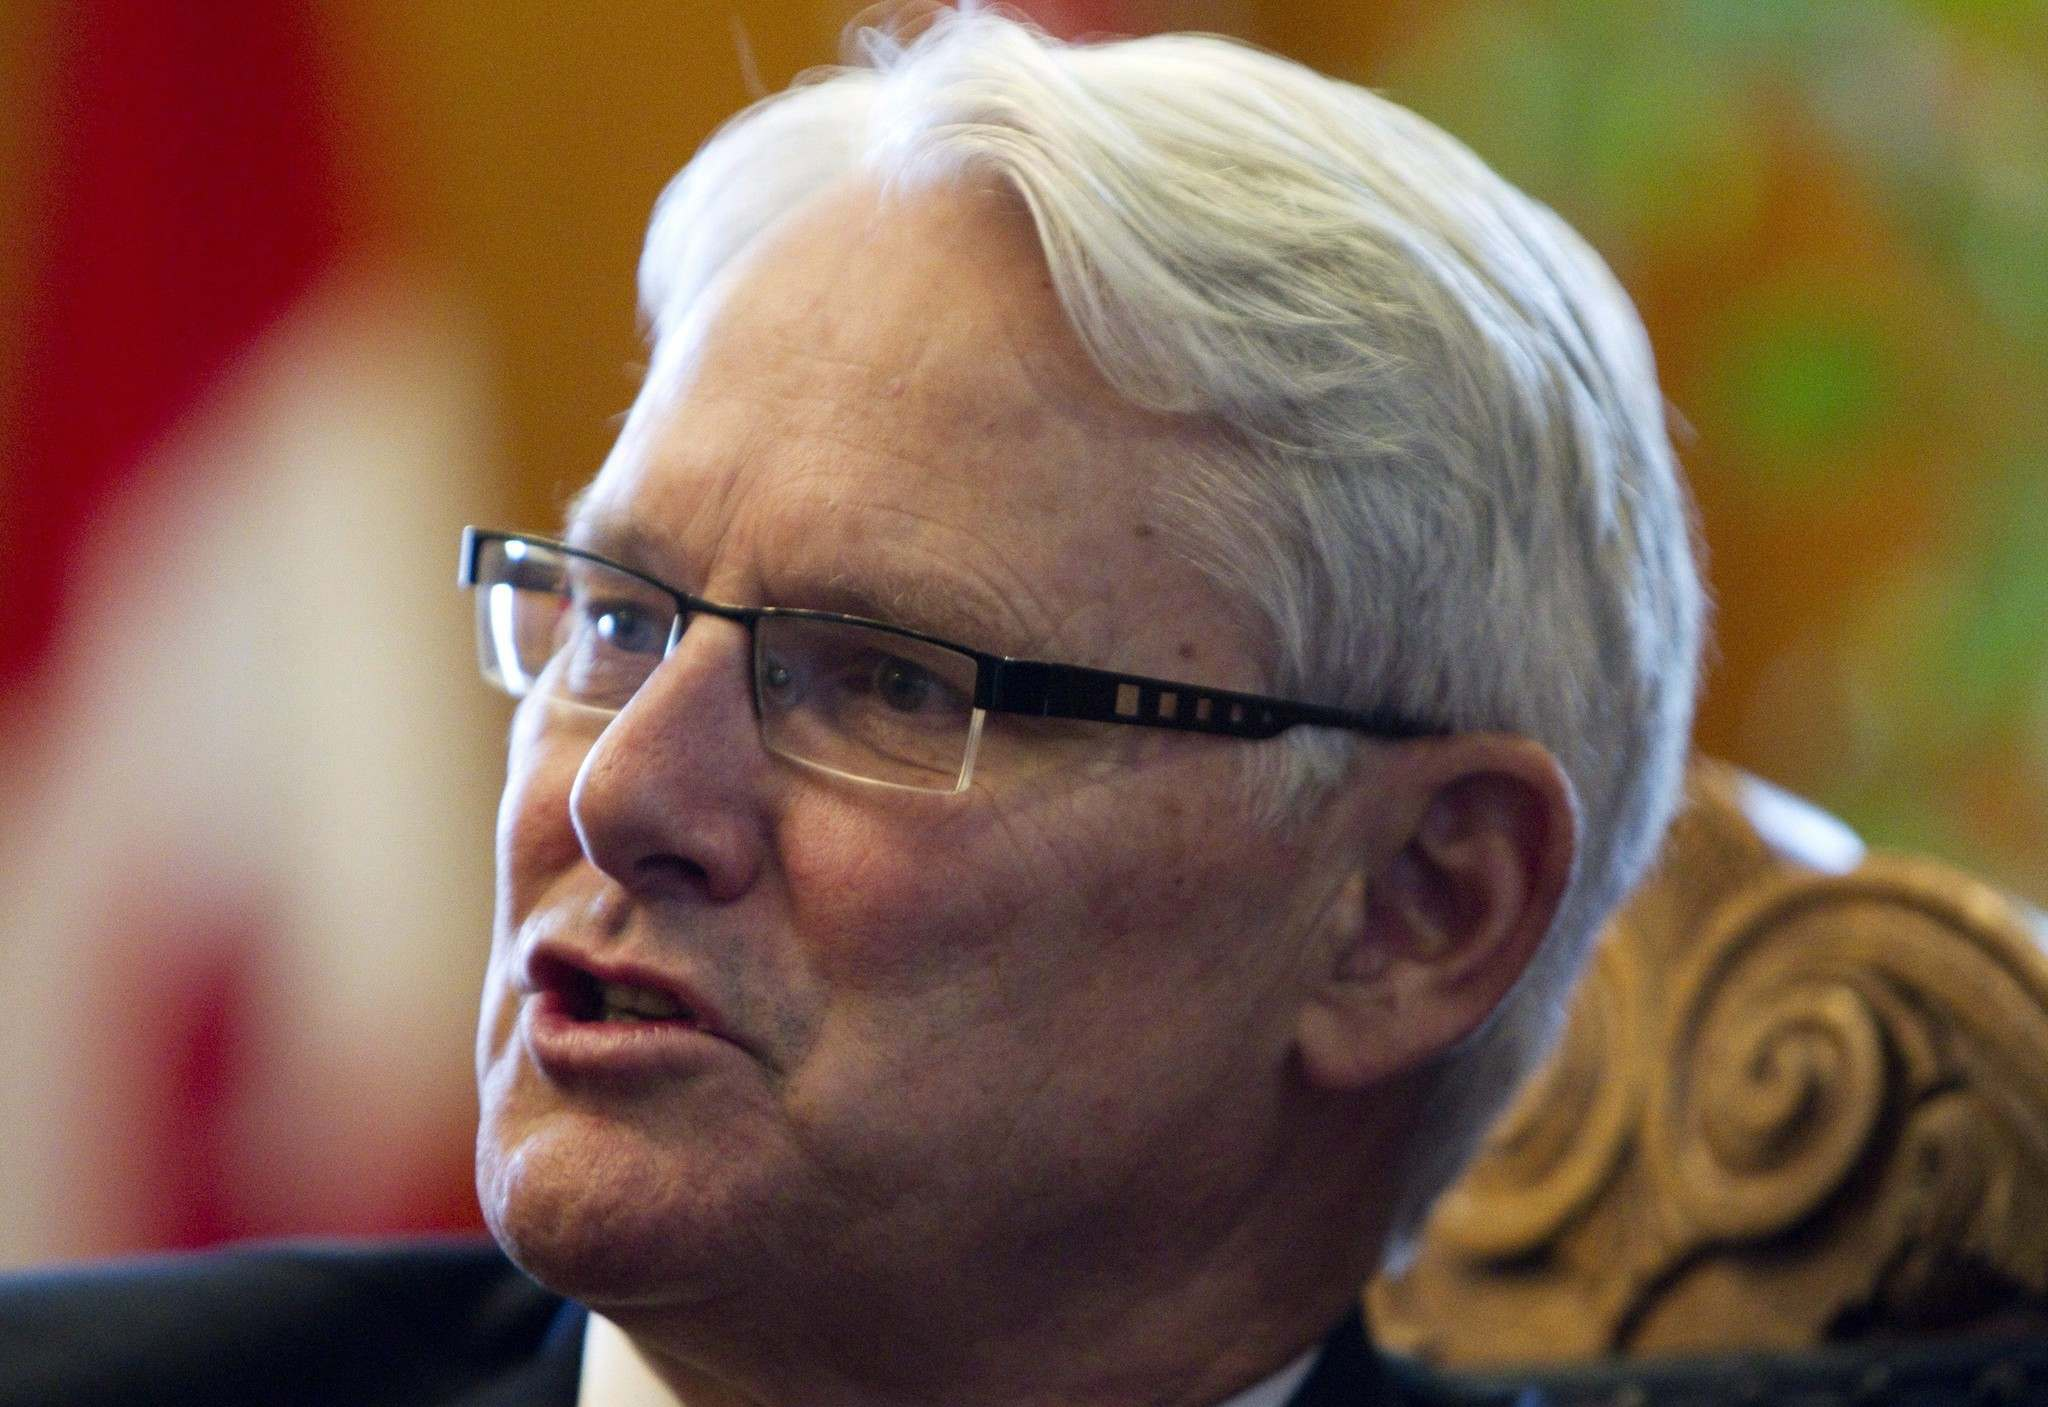 Former B.C. Premier Gordon Campbell faces sexual assault allegations.</p>